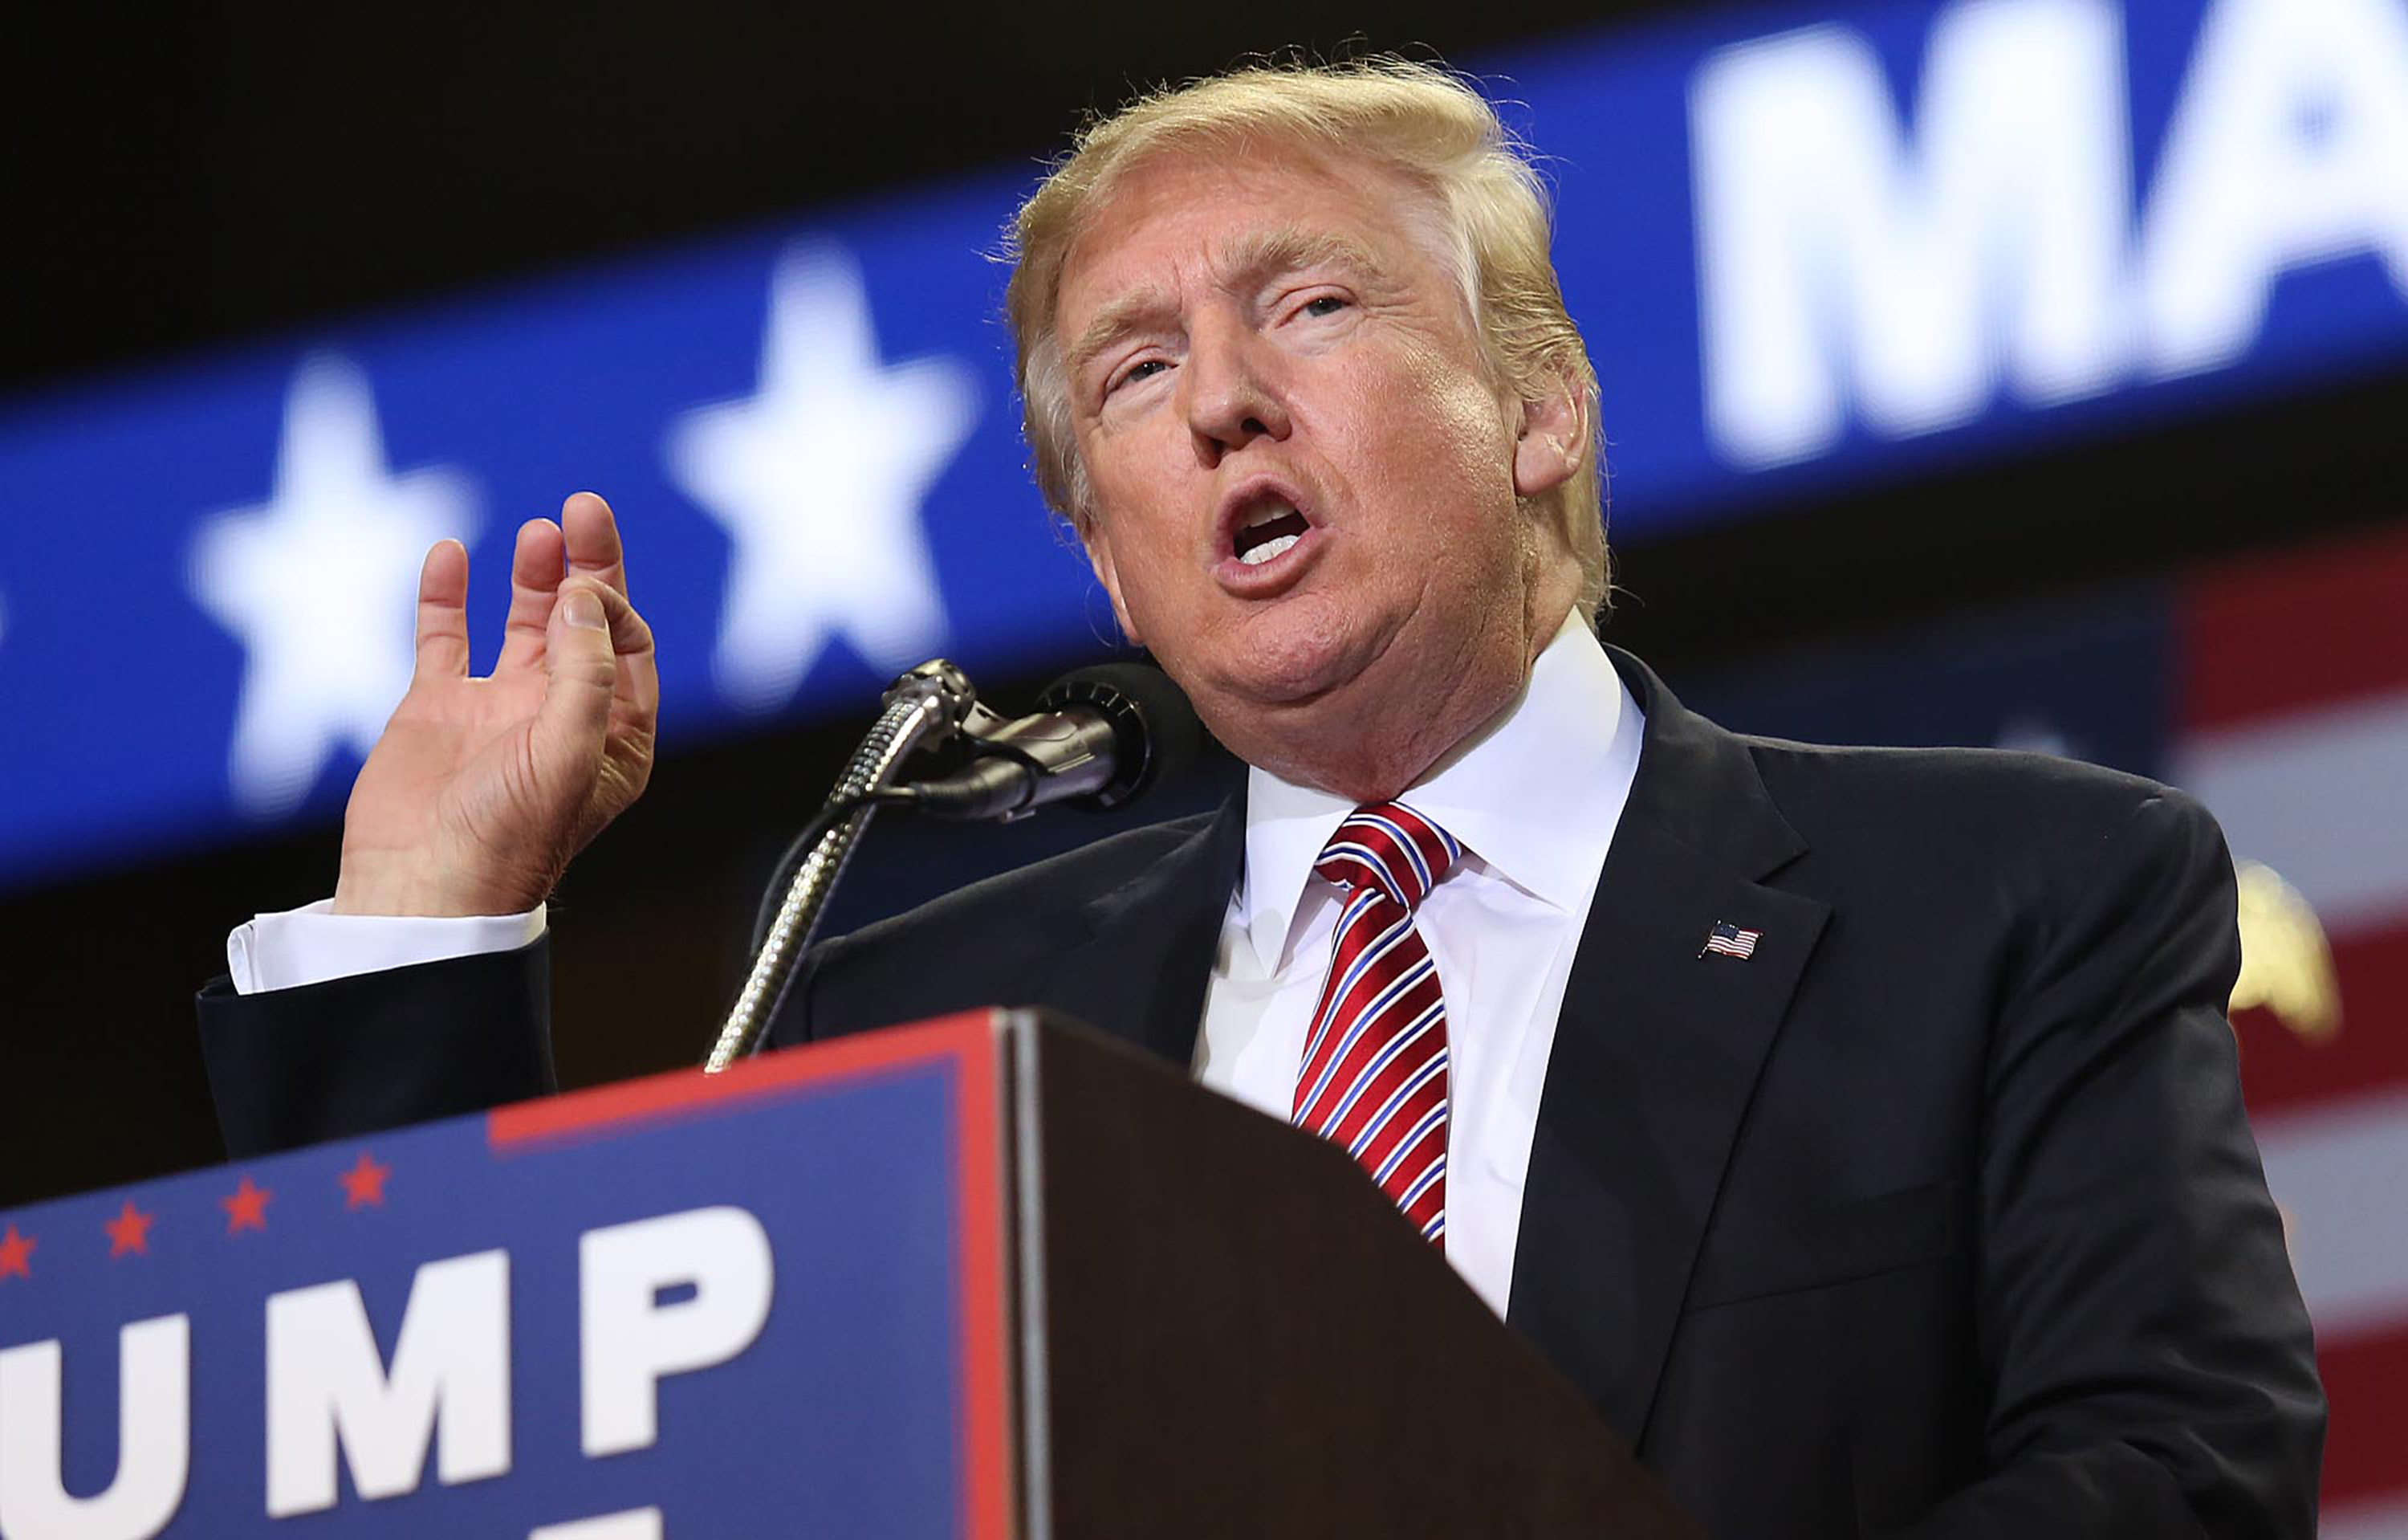 Subdued Trump tells home builders heâs one of them